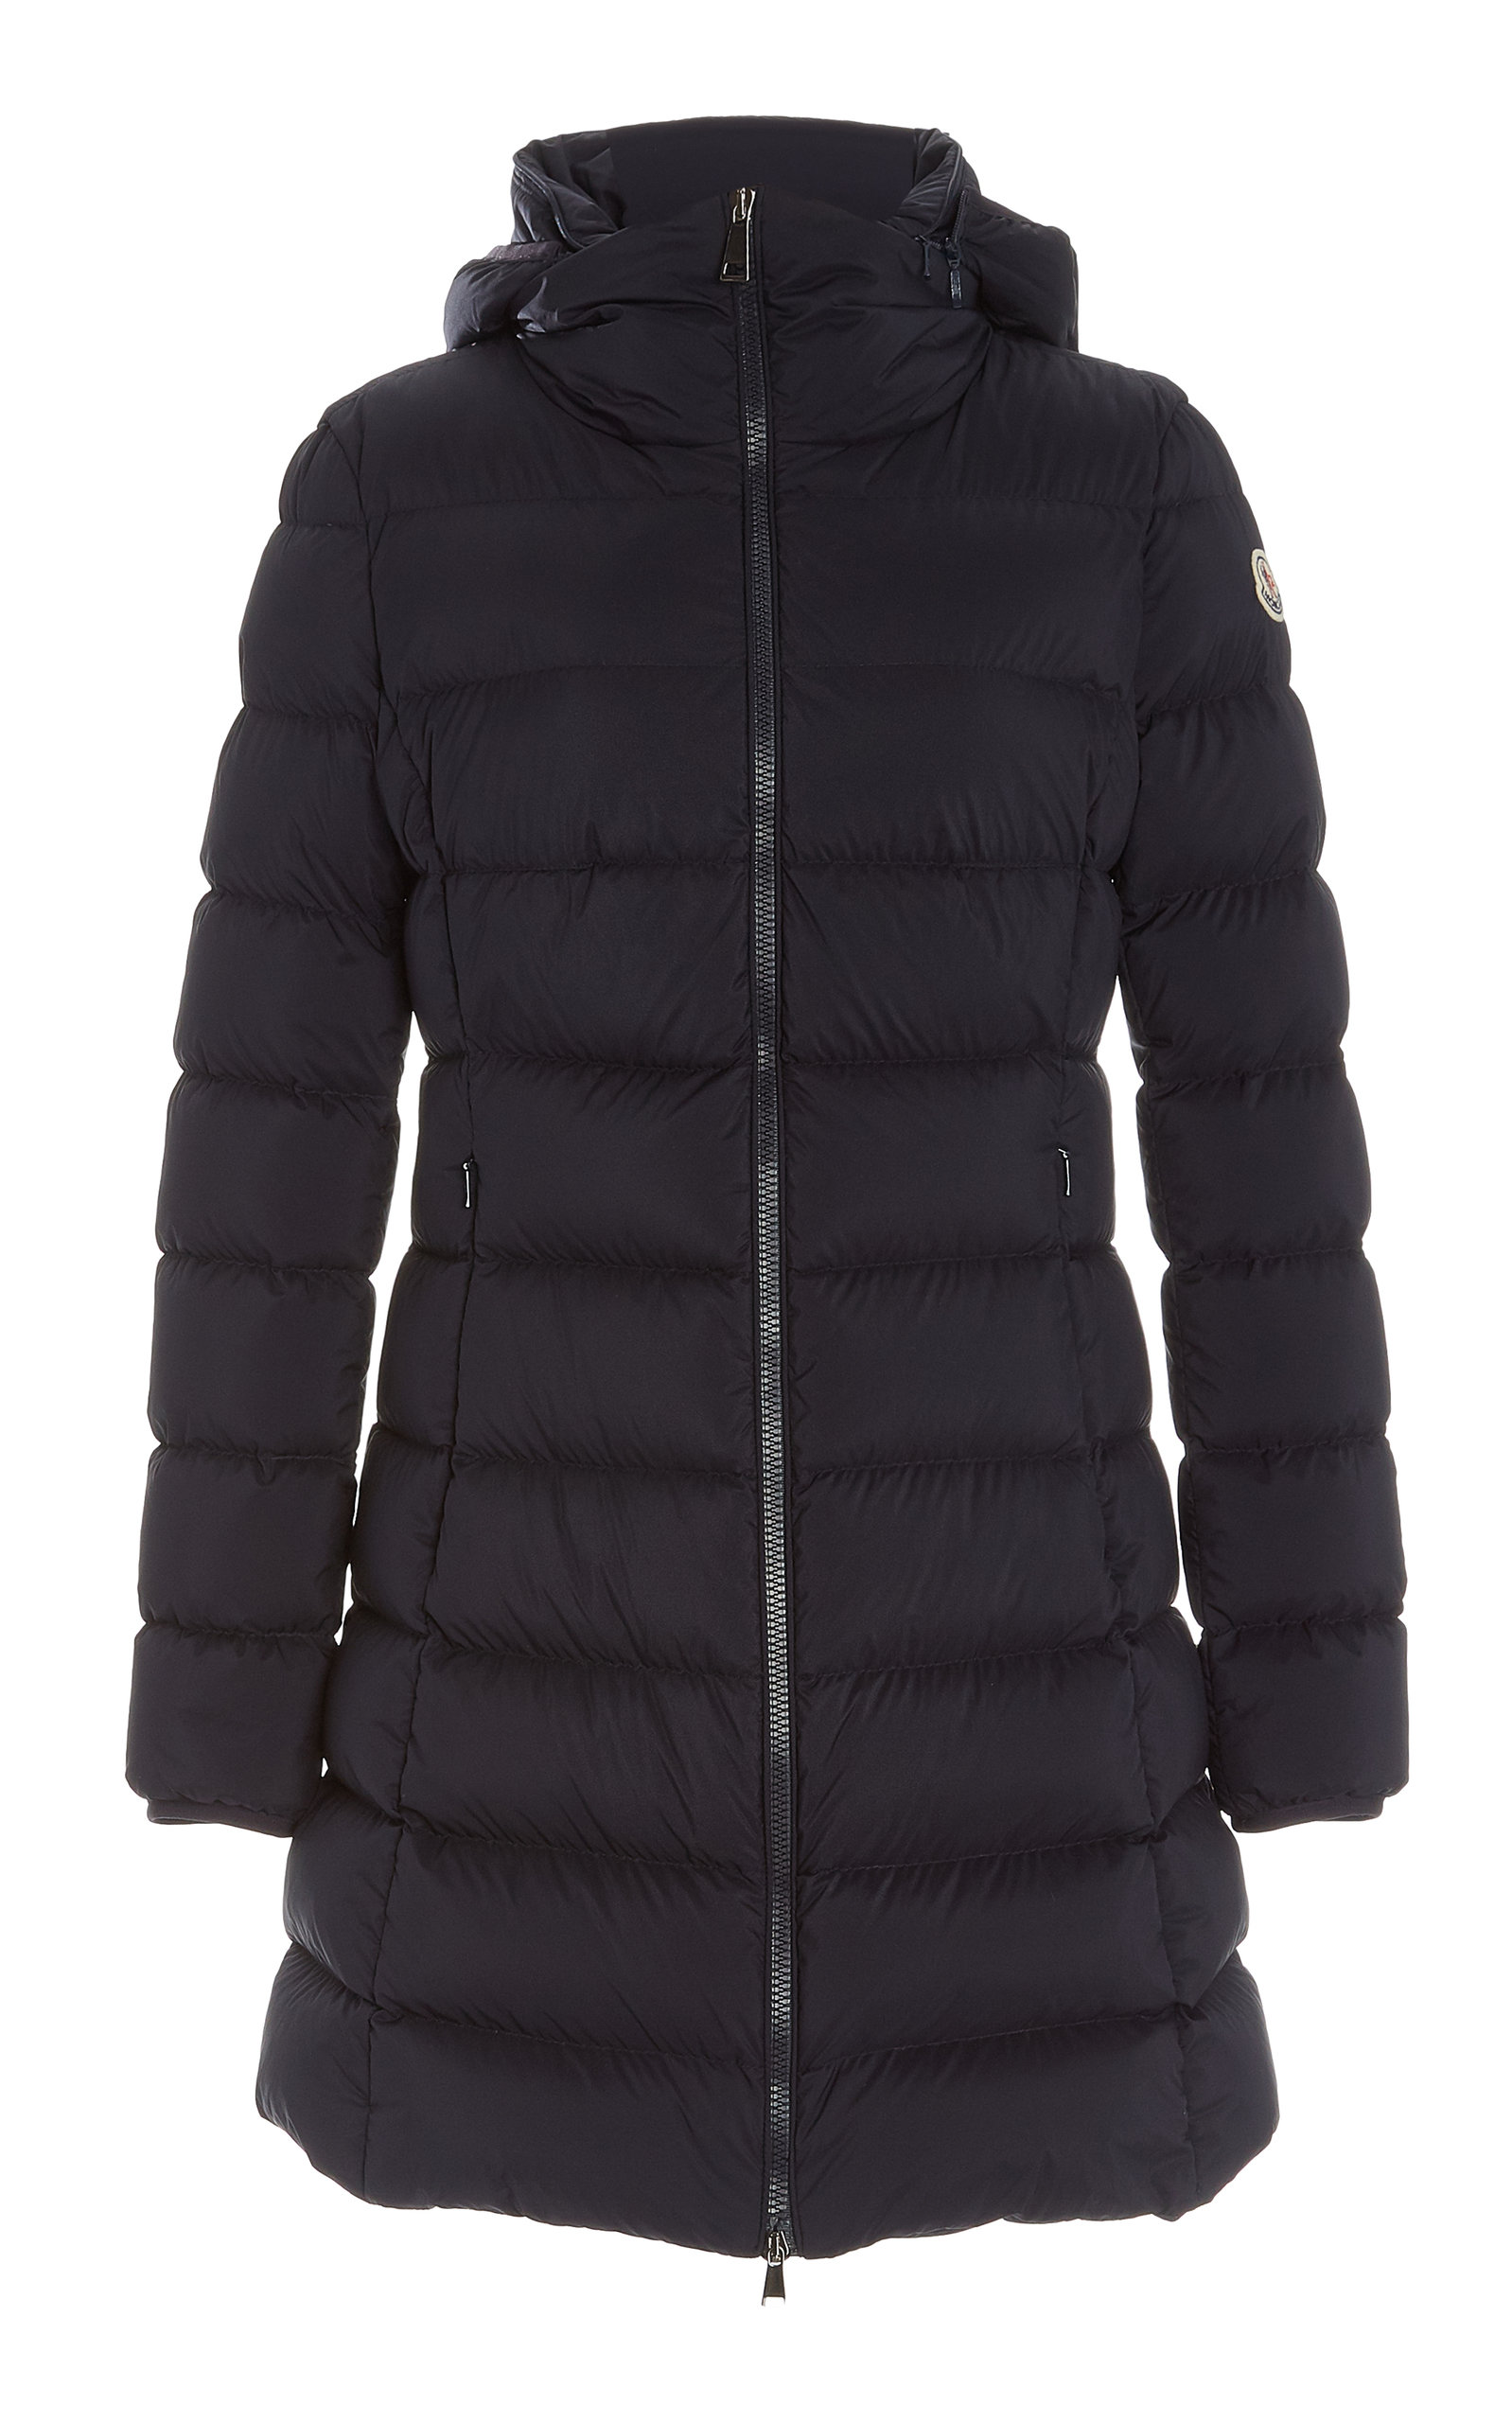 Moncler GIE HOODED LONG DOWN PUFFER COAT